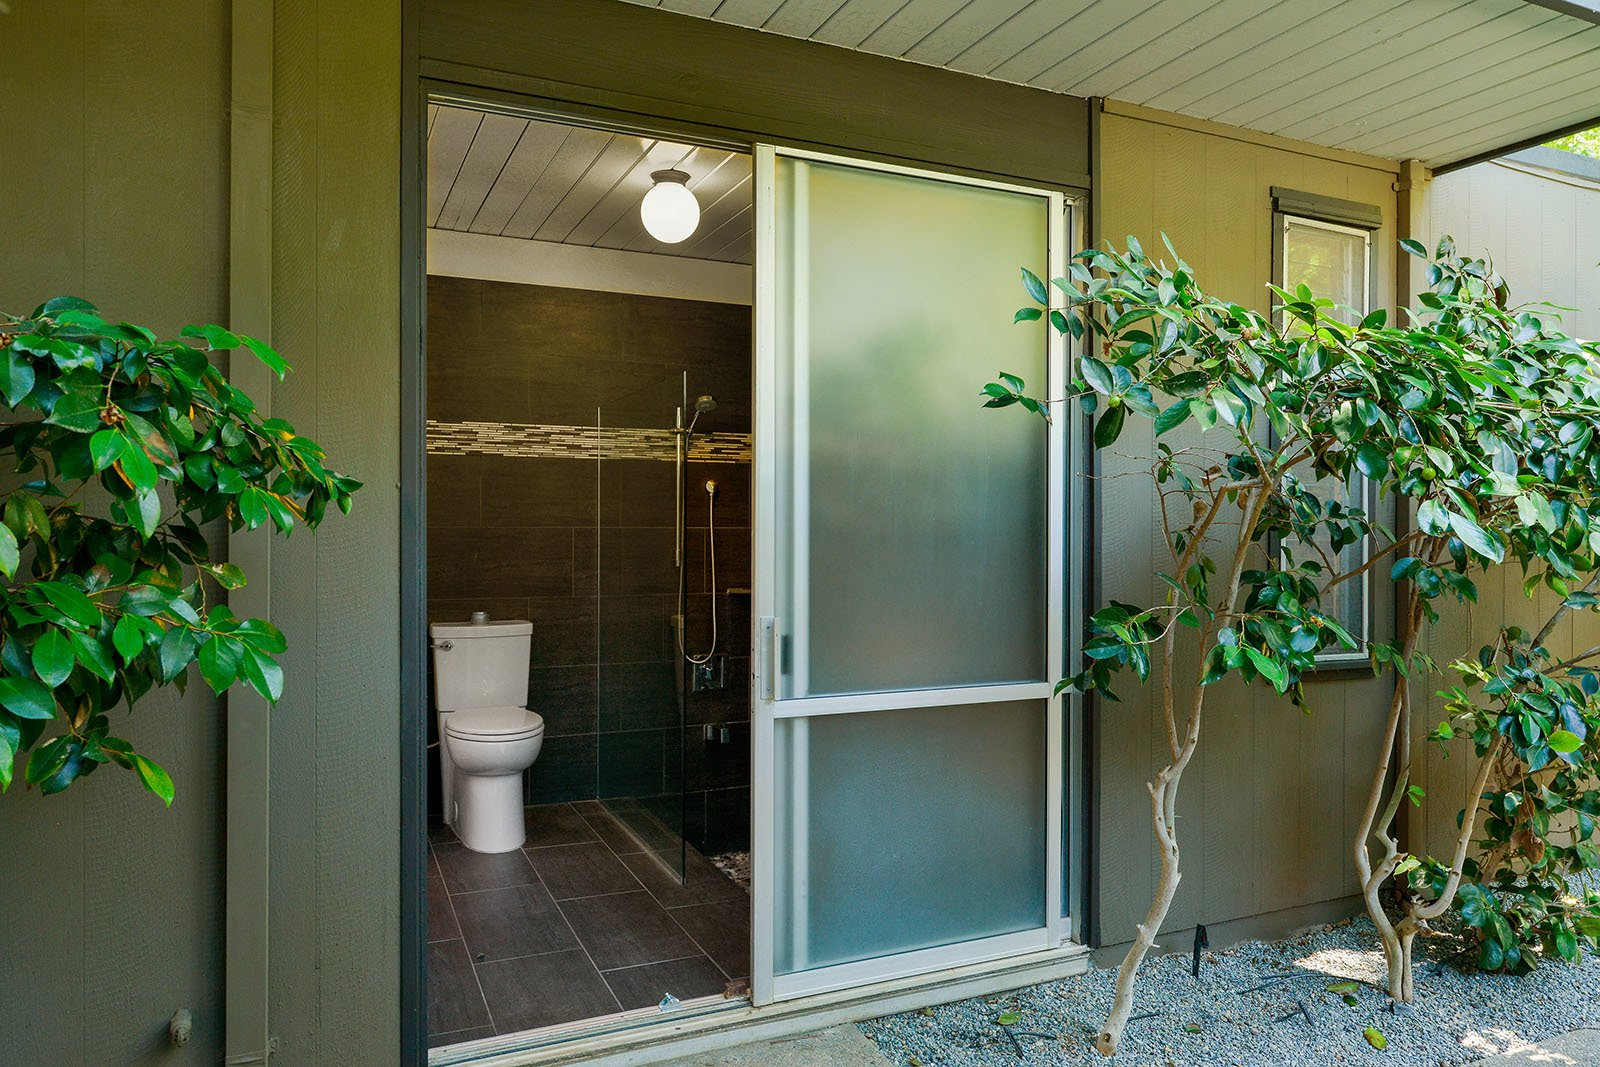 Photo 8 of 15 in An Enormous Bay Area Eichler Asks $1.45M